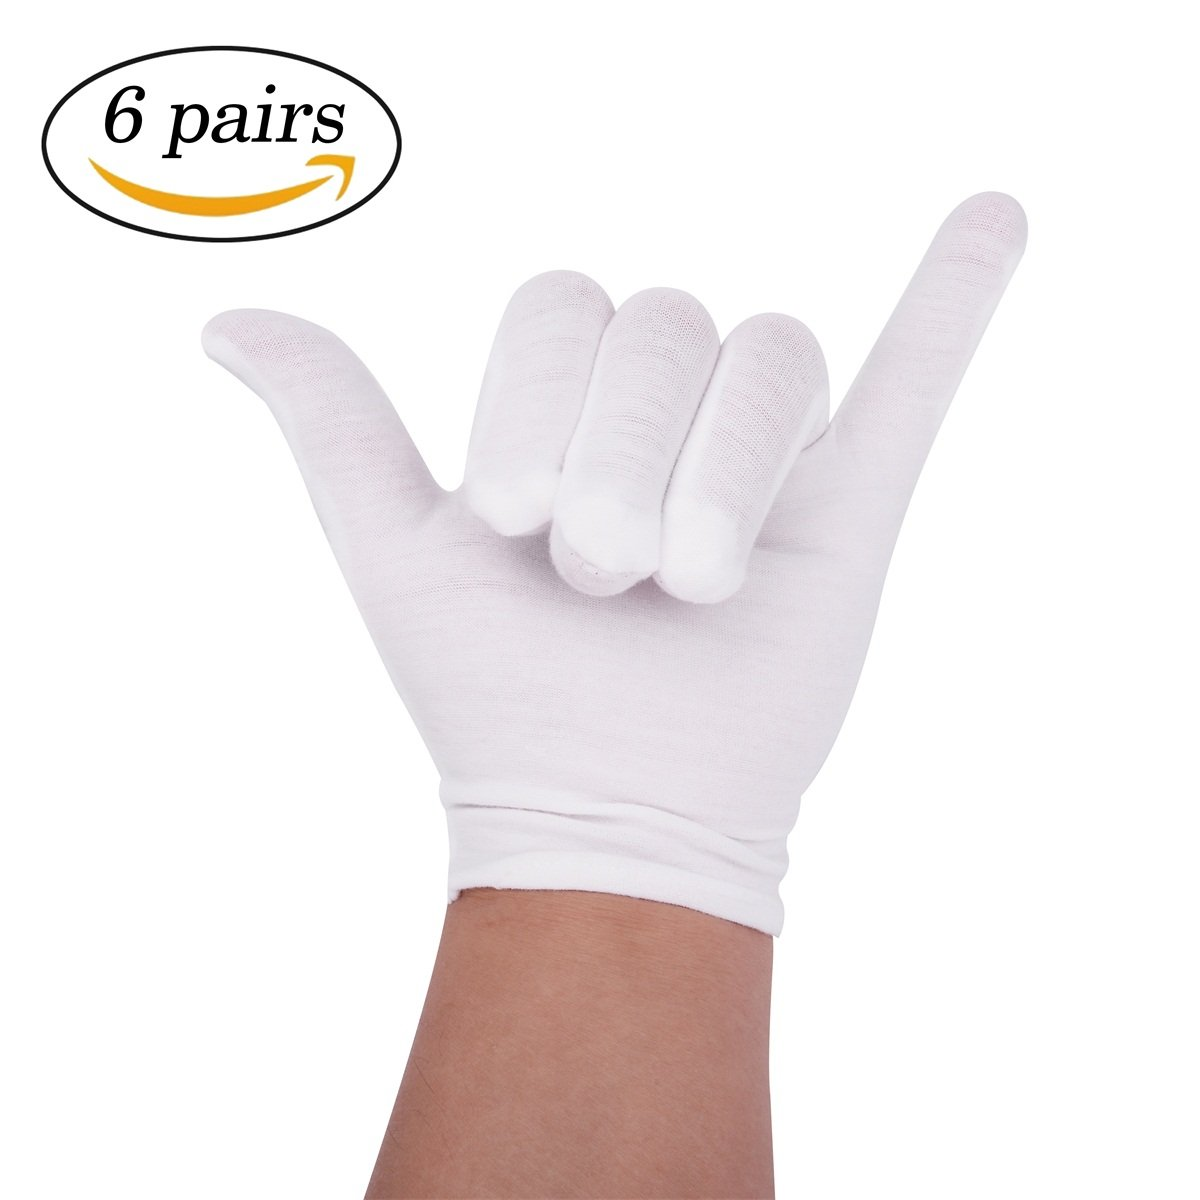 6 Pairs White Cotton Gloves for Cosmetic Moisturizing Coin Jewelry Inspection 20 Cm Wei Shang